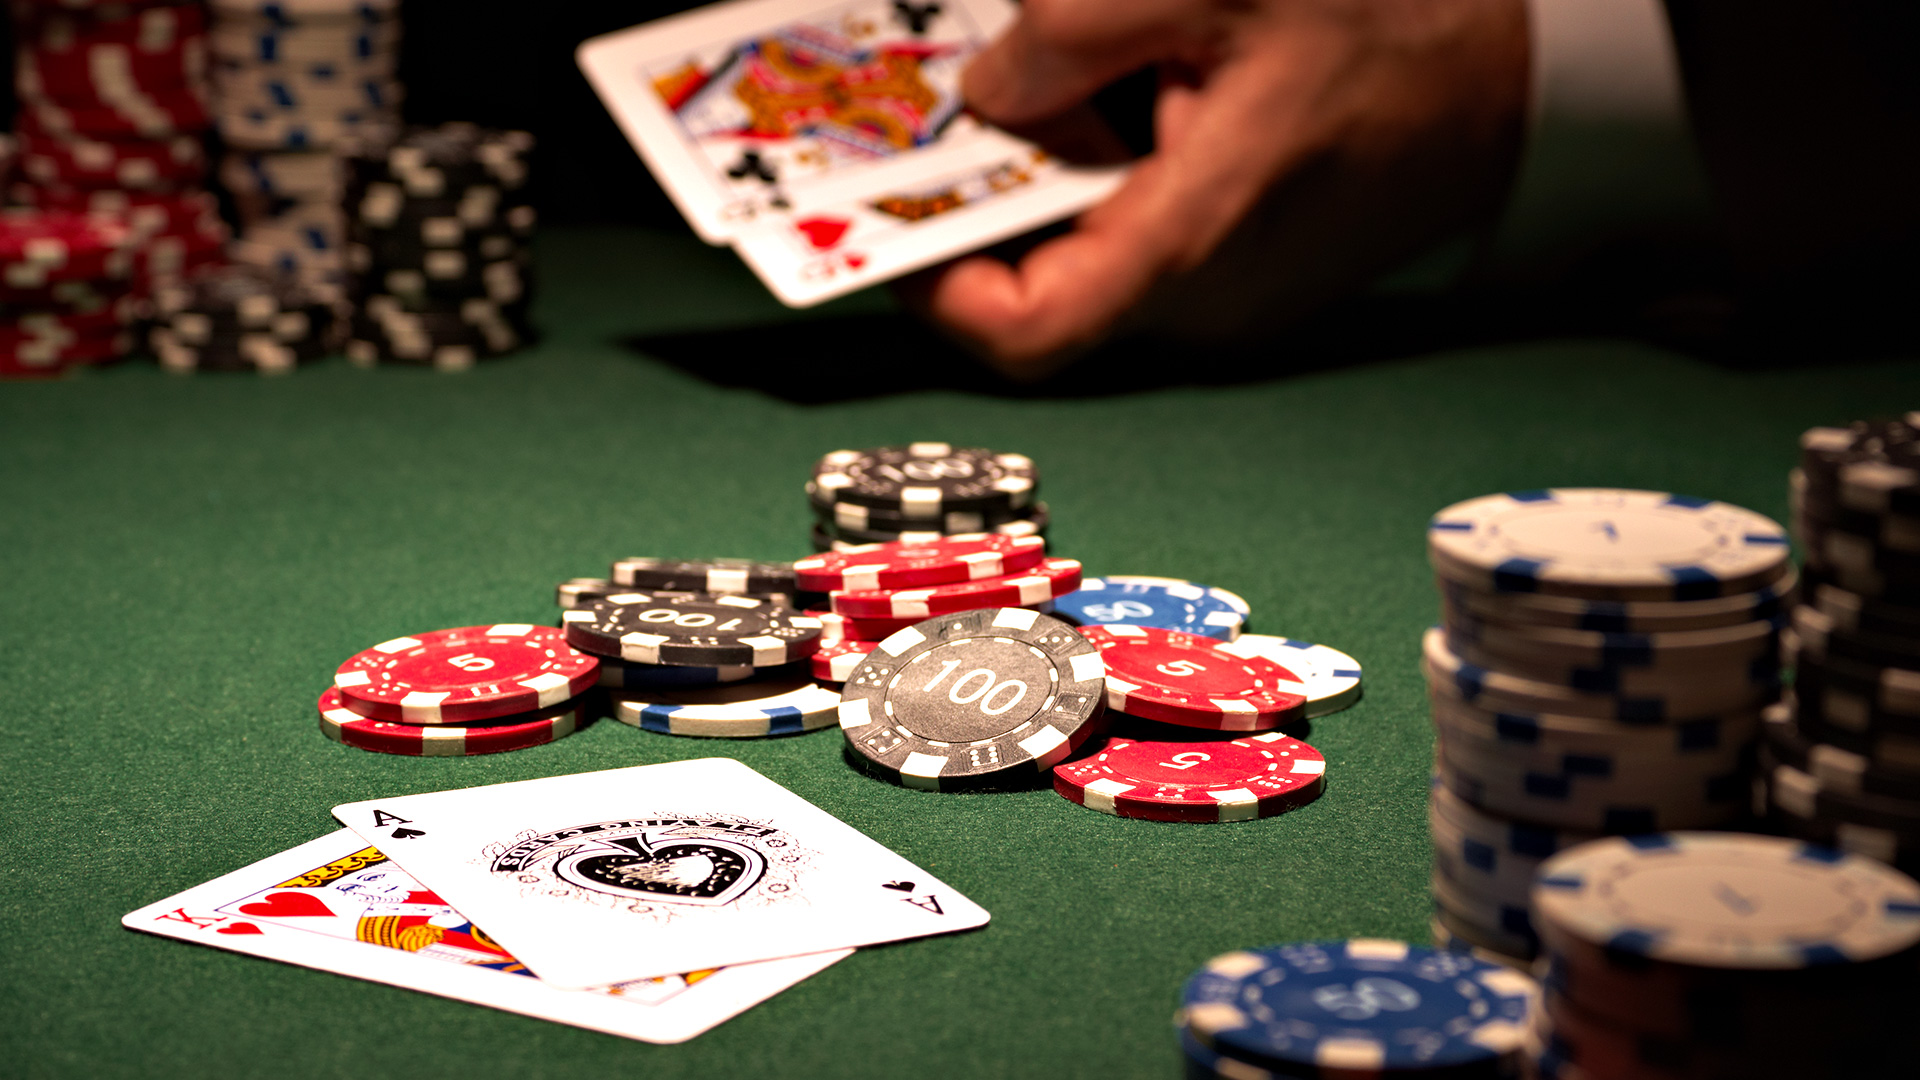 The Capability To Deal With Online Poker As A Service